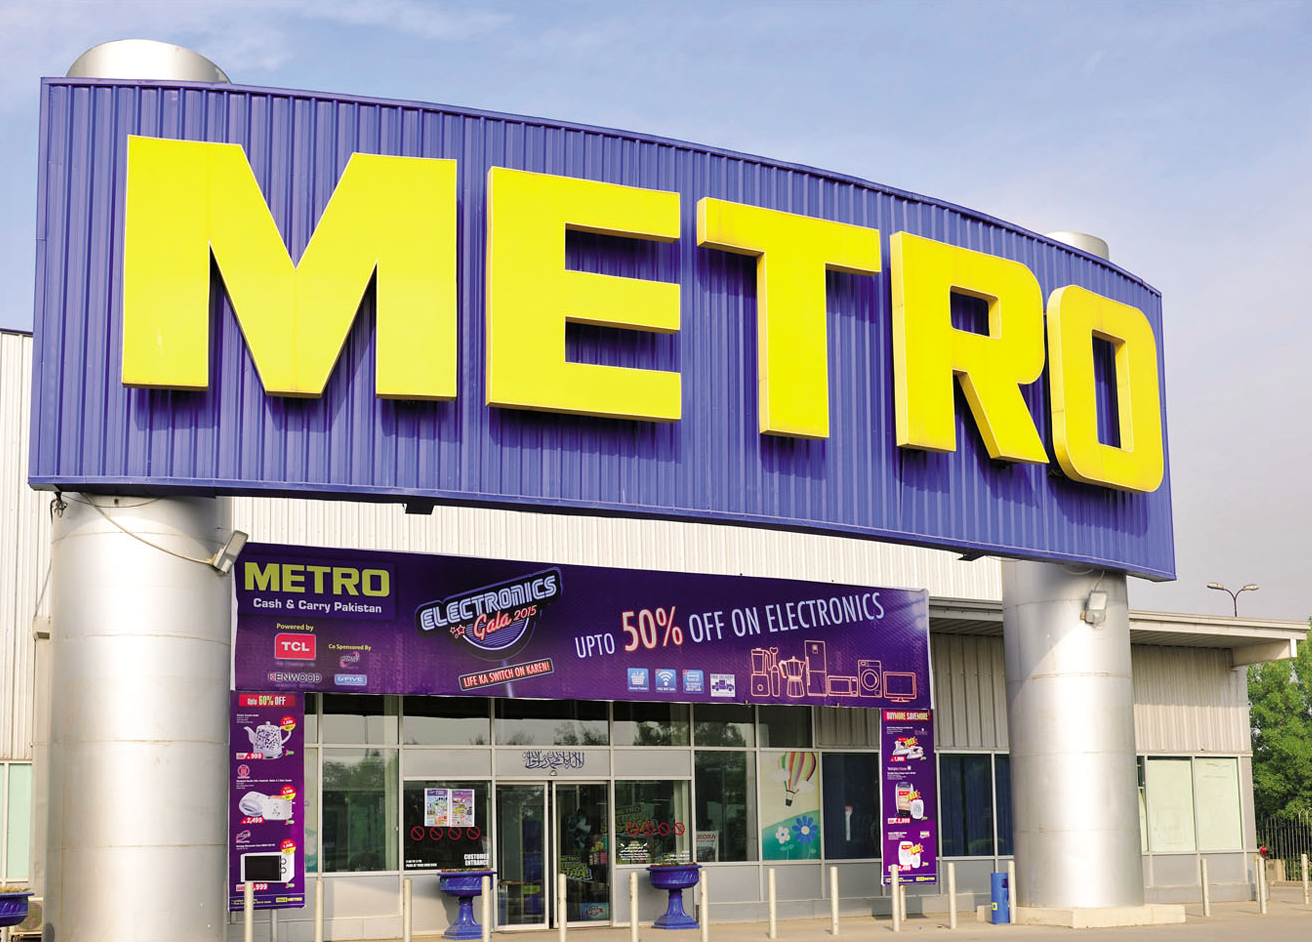 METRO Cash & Carry Lahore